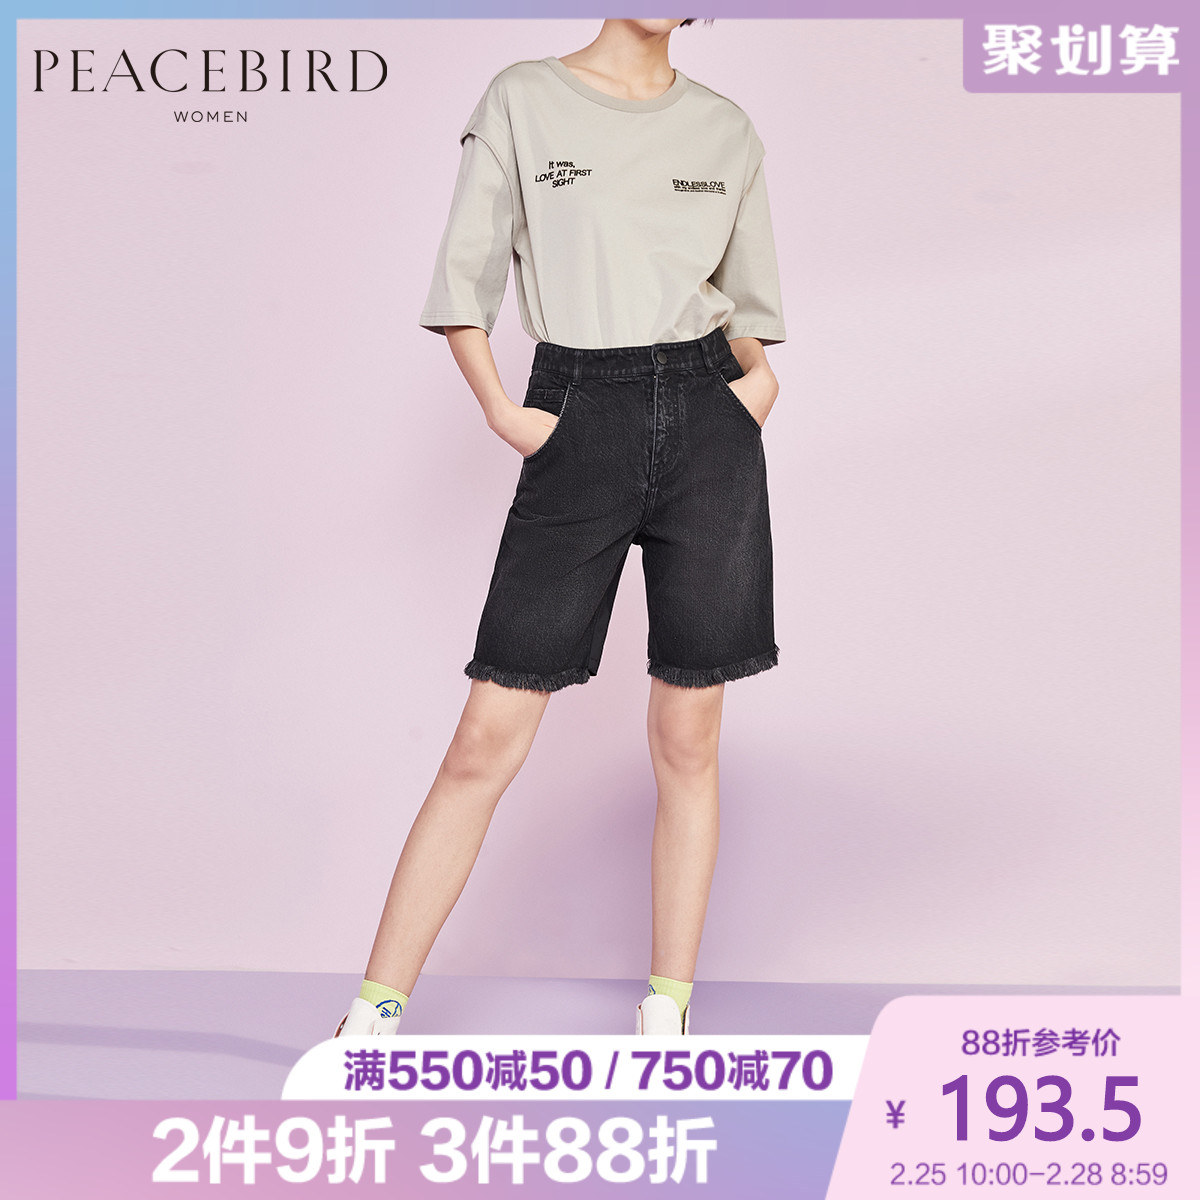 Taiping bird black high waisted cowboy riding pants women's new 2020 spring casual splicing suit pants and raw edge shorts